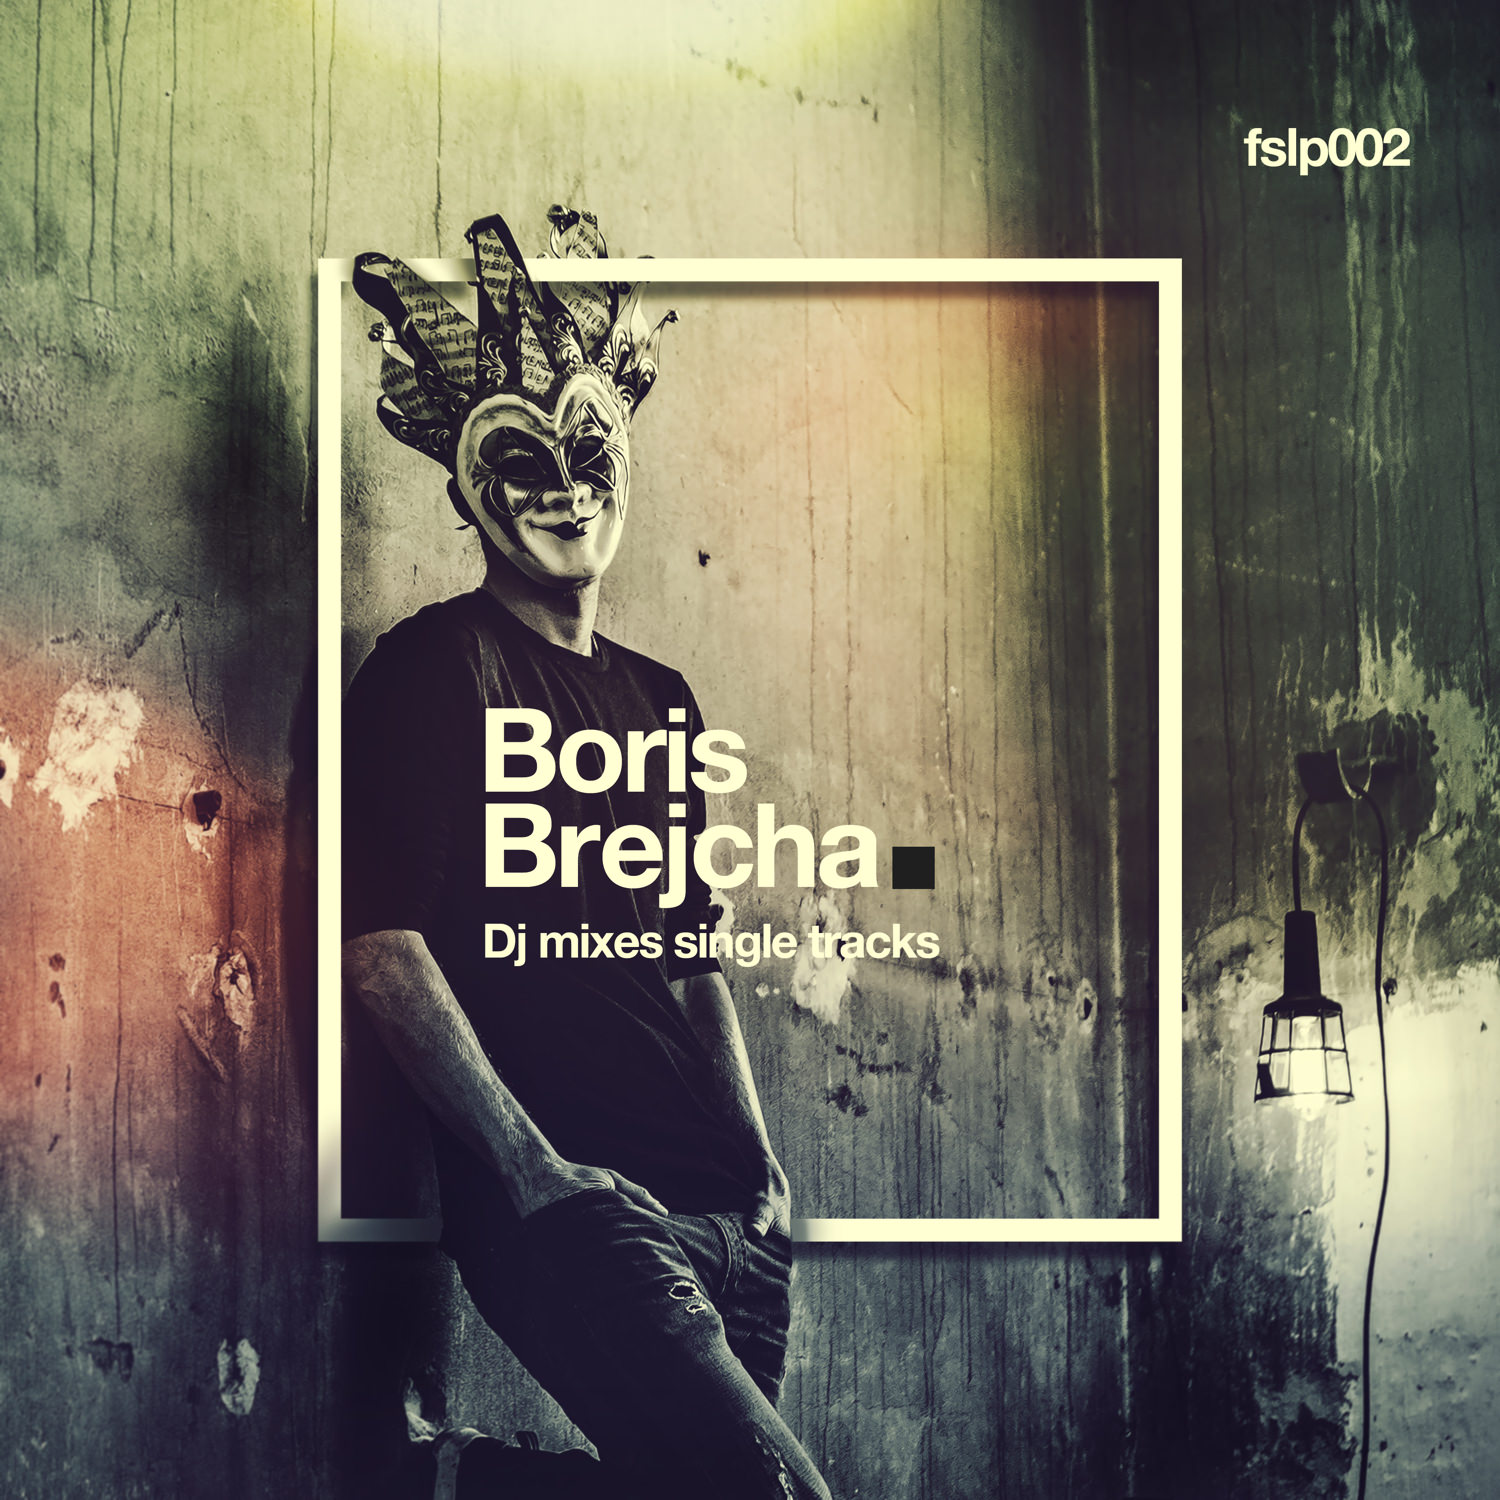 DJ MIXES SINGLE TRACKS - BORIS BREJCHABoris Brejcha is coming up with his second Longplayer this year. This Longplayer is a collection of all DJ Mixes (Christmas Mixes), he did in the past four years, splitted into single Tracks.__SpotifyApple musicBeatport